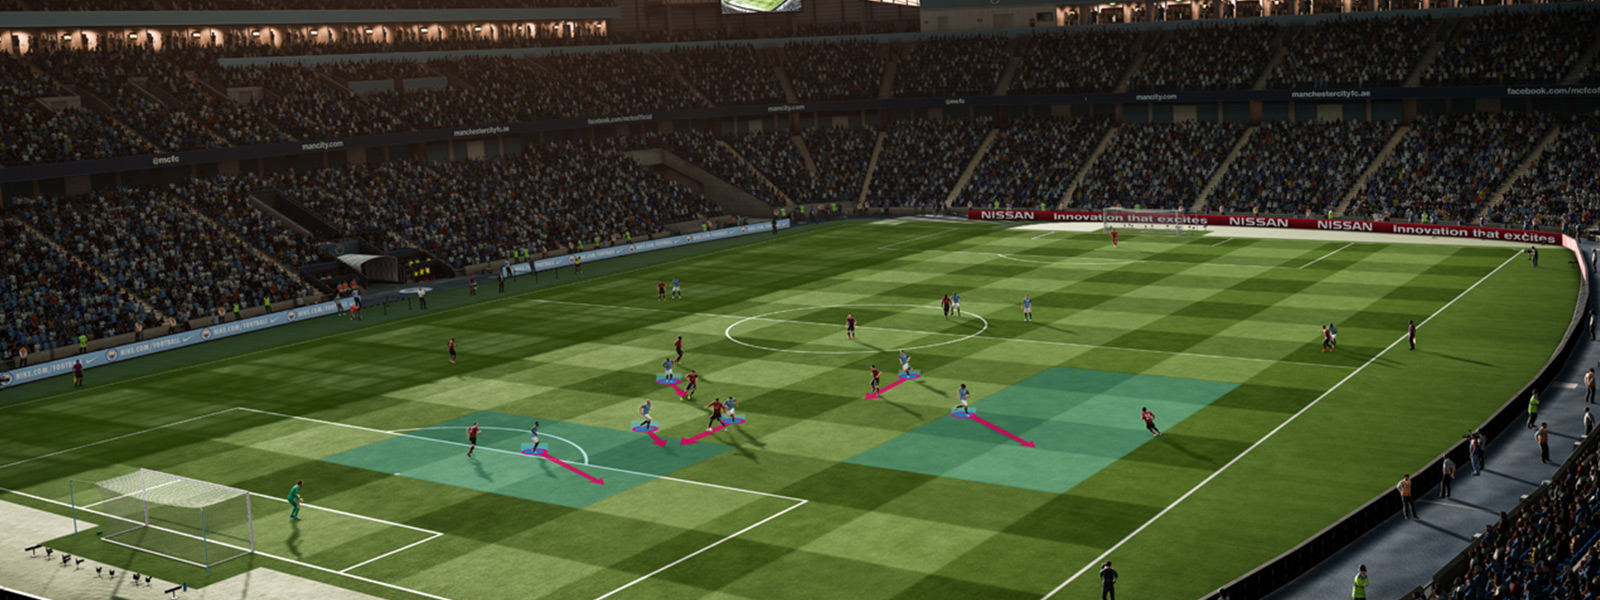 Vue d'ensemble d'un match de FIFA